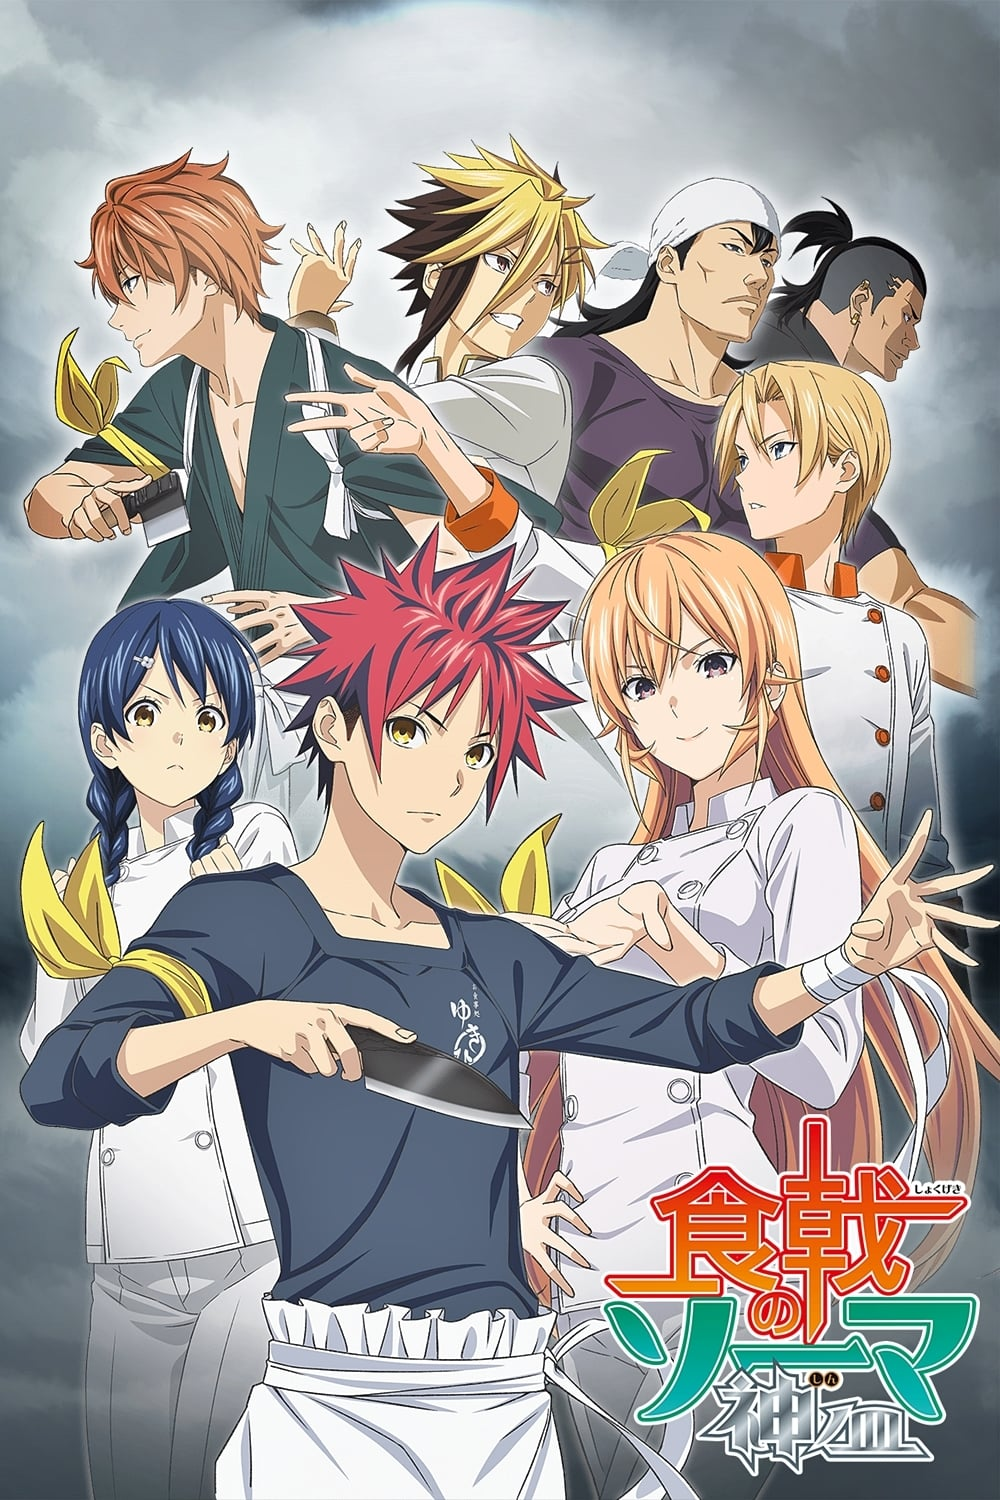 Food Wars Streaming Saison 3 : streaming, saison, Saison, Episode, Streaming